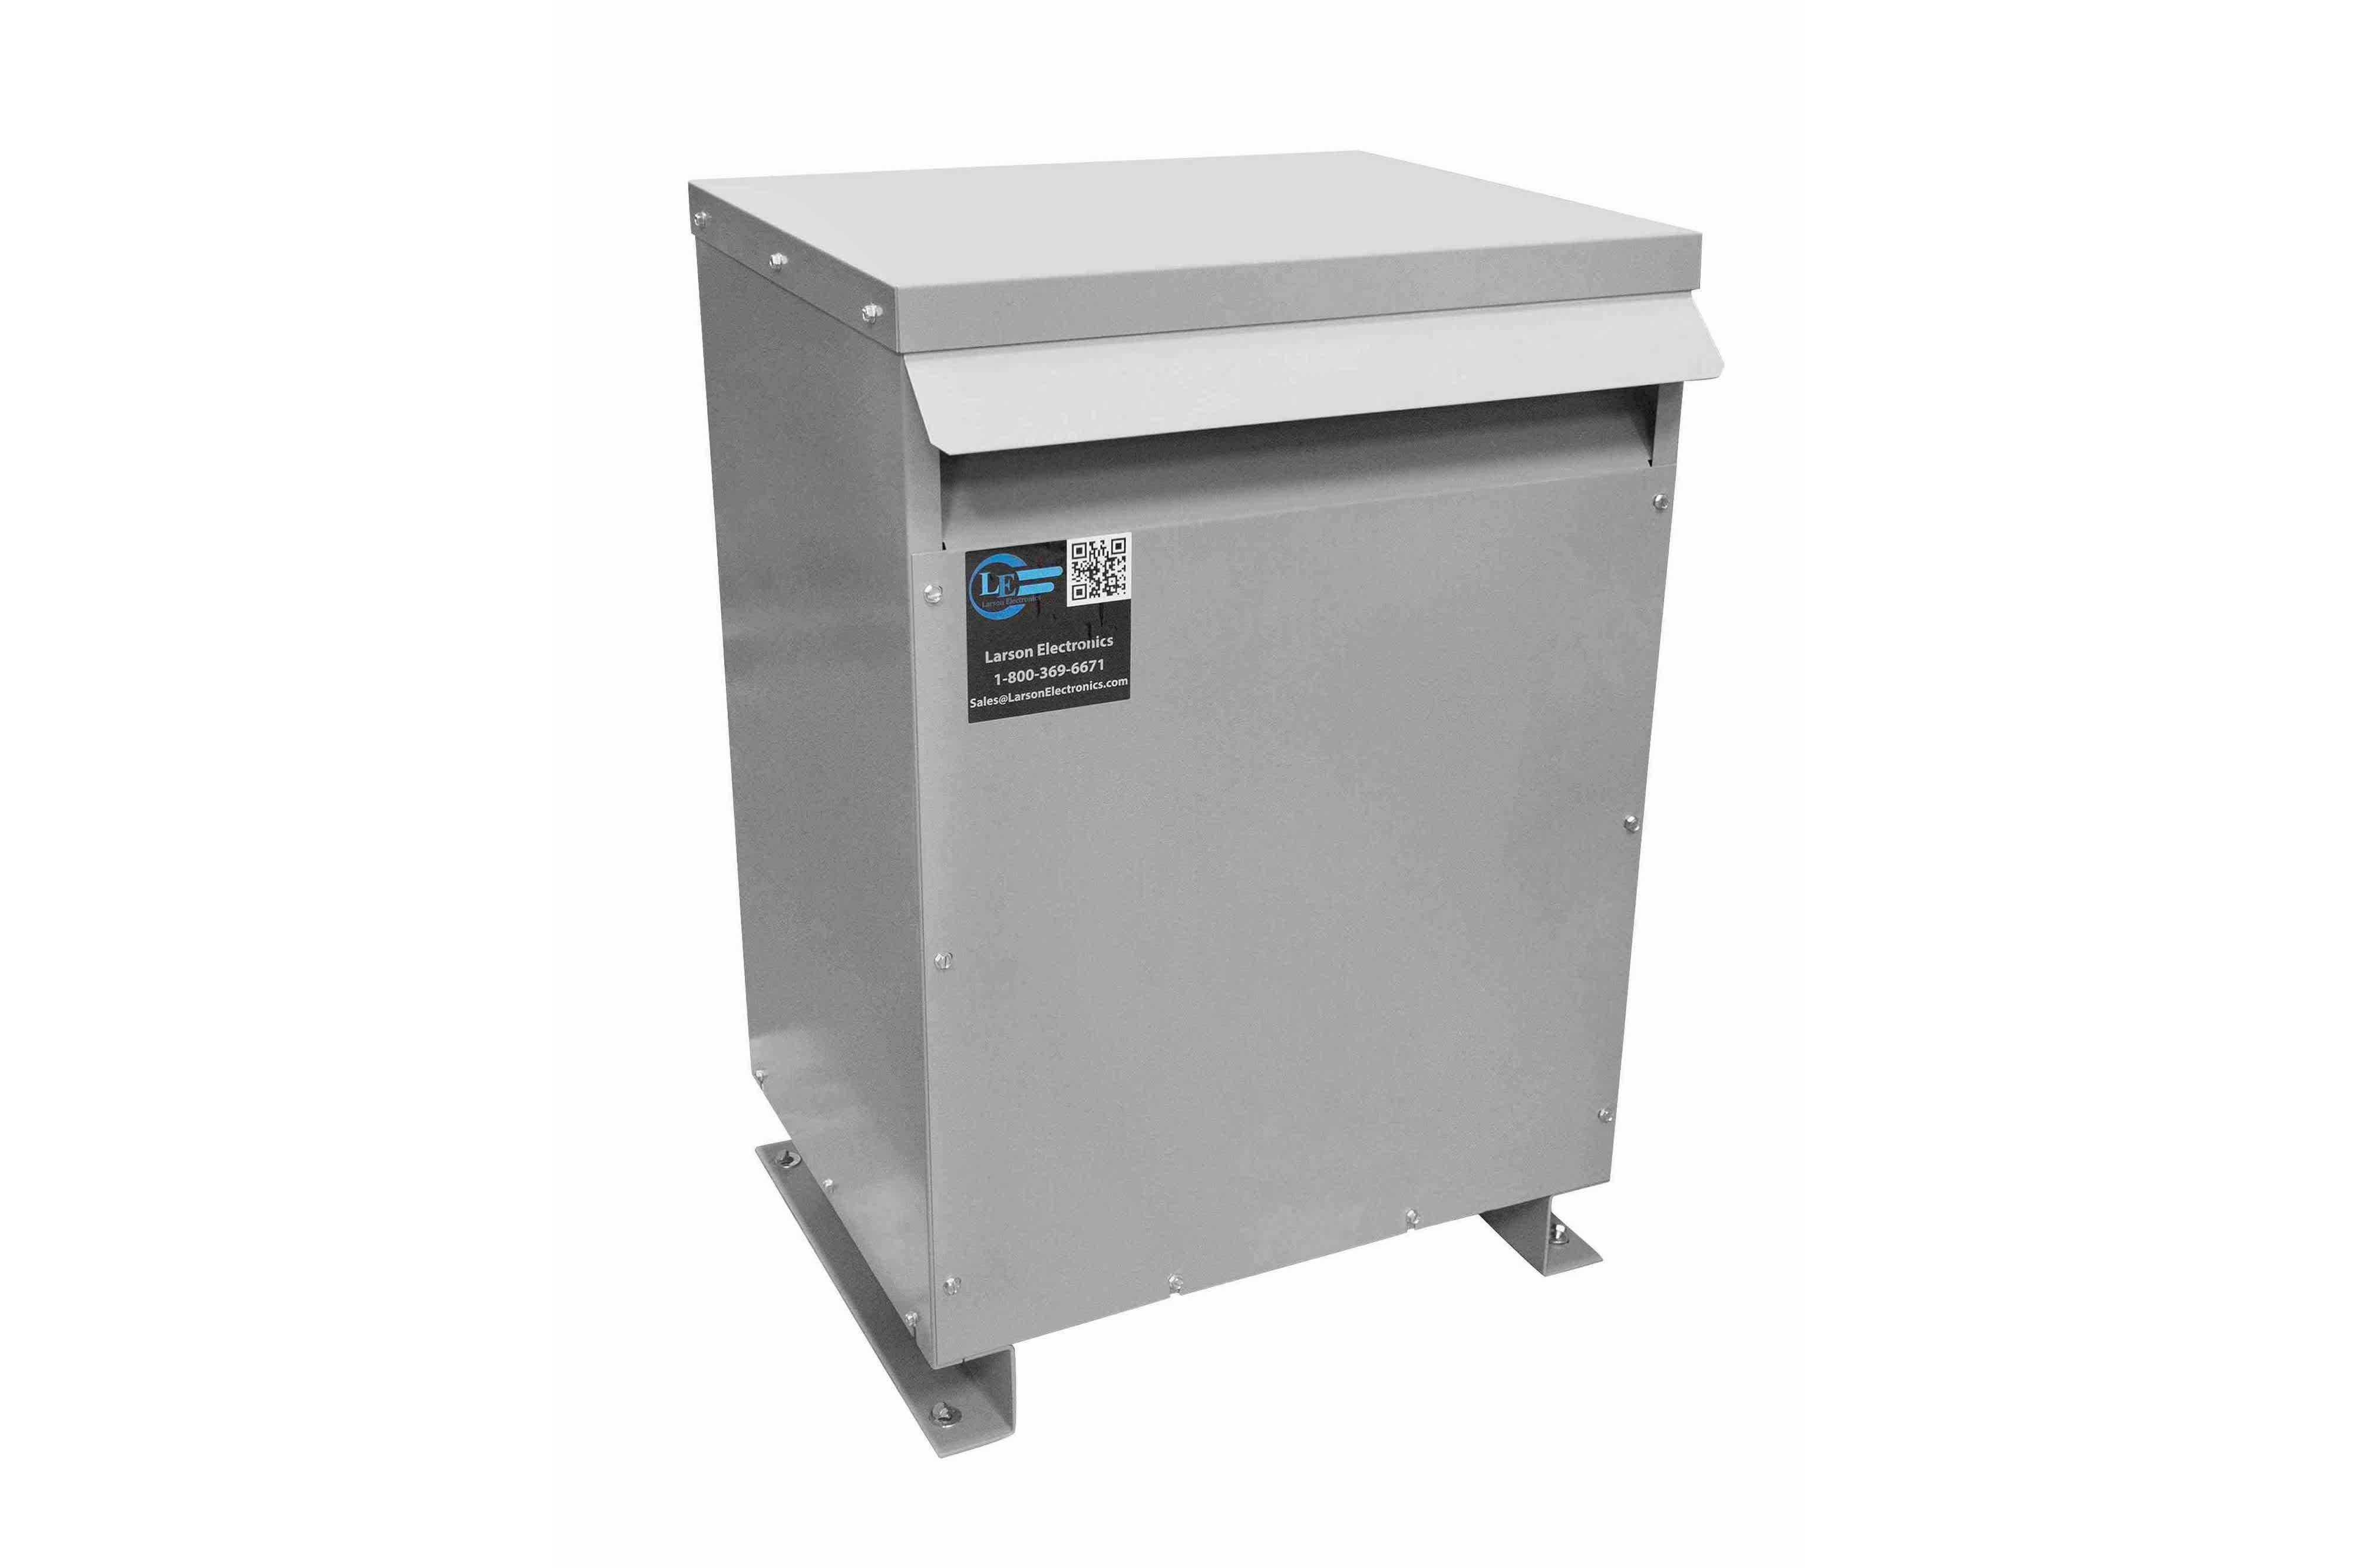 25 kVA 3PH Isolation Transformer, 480V Wye Primary, 240V/120 Delta Secondary, N3R, Ventilated, 60 Hz